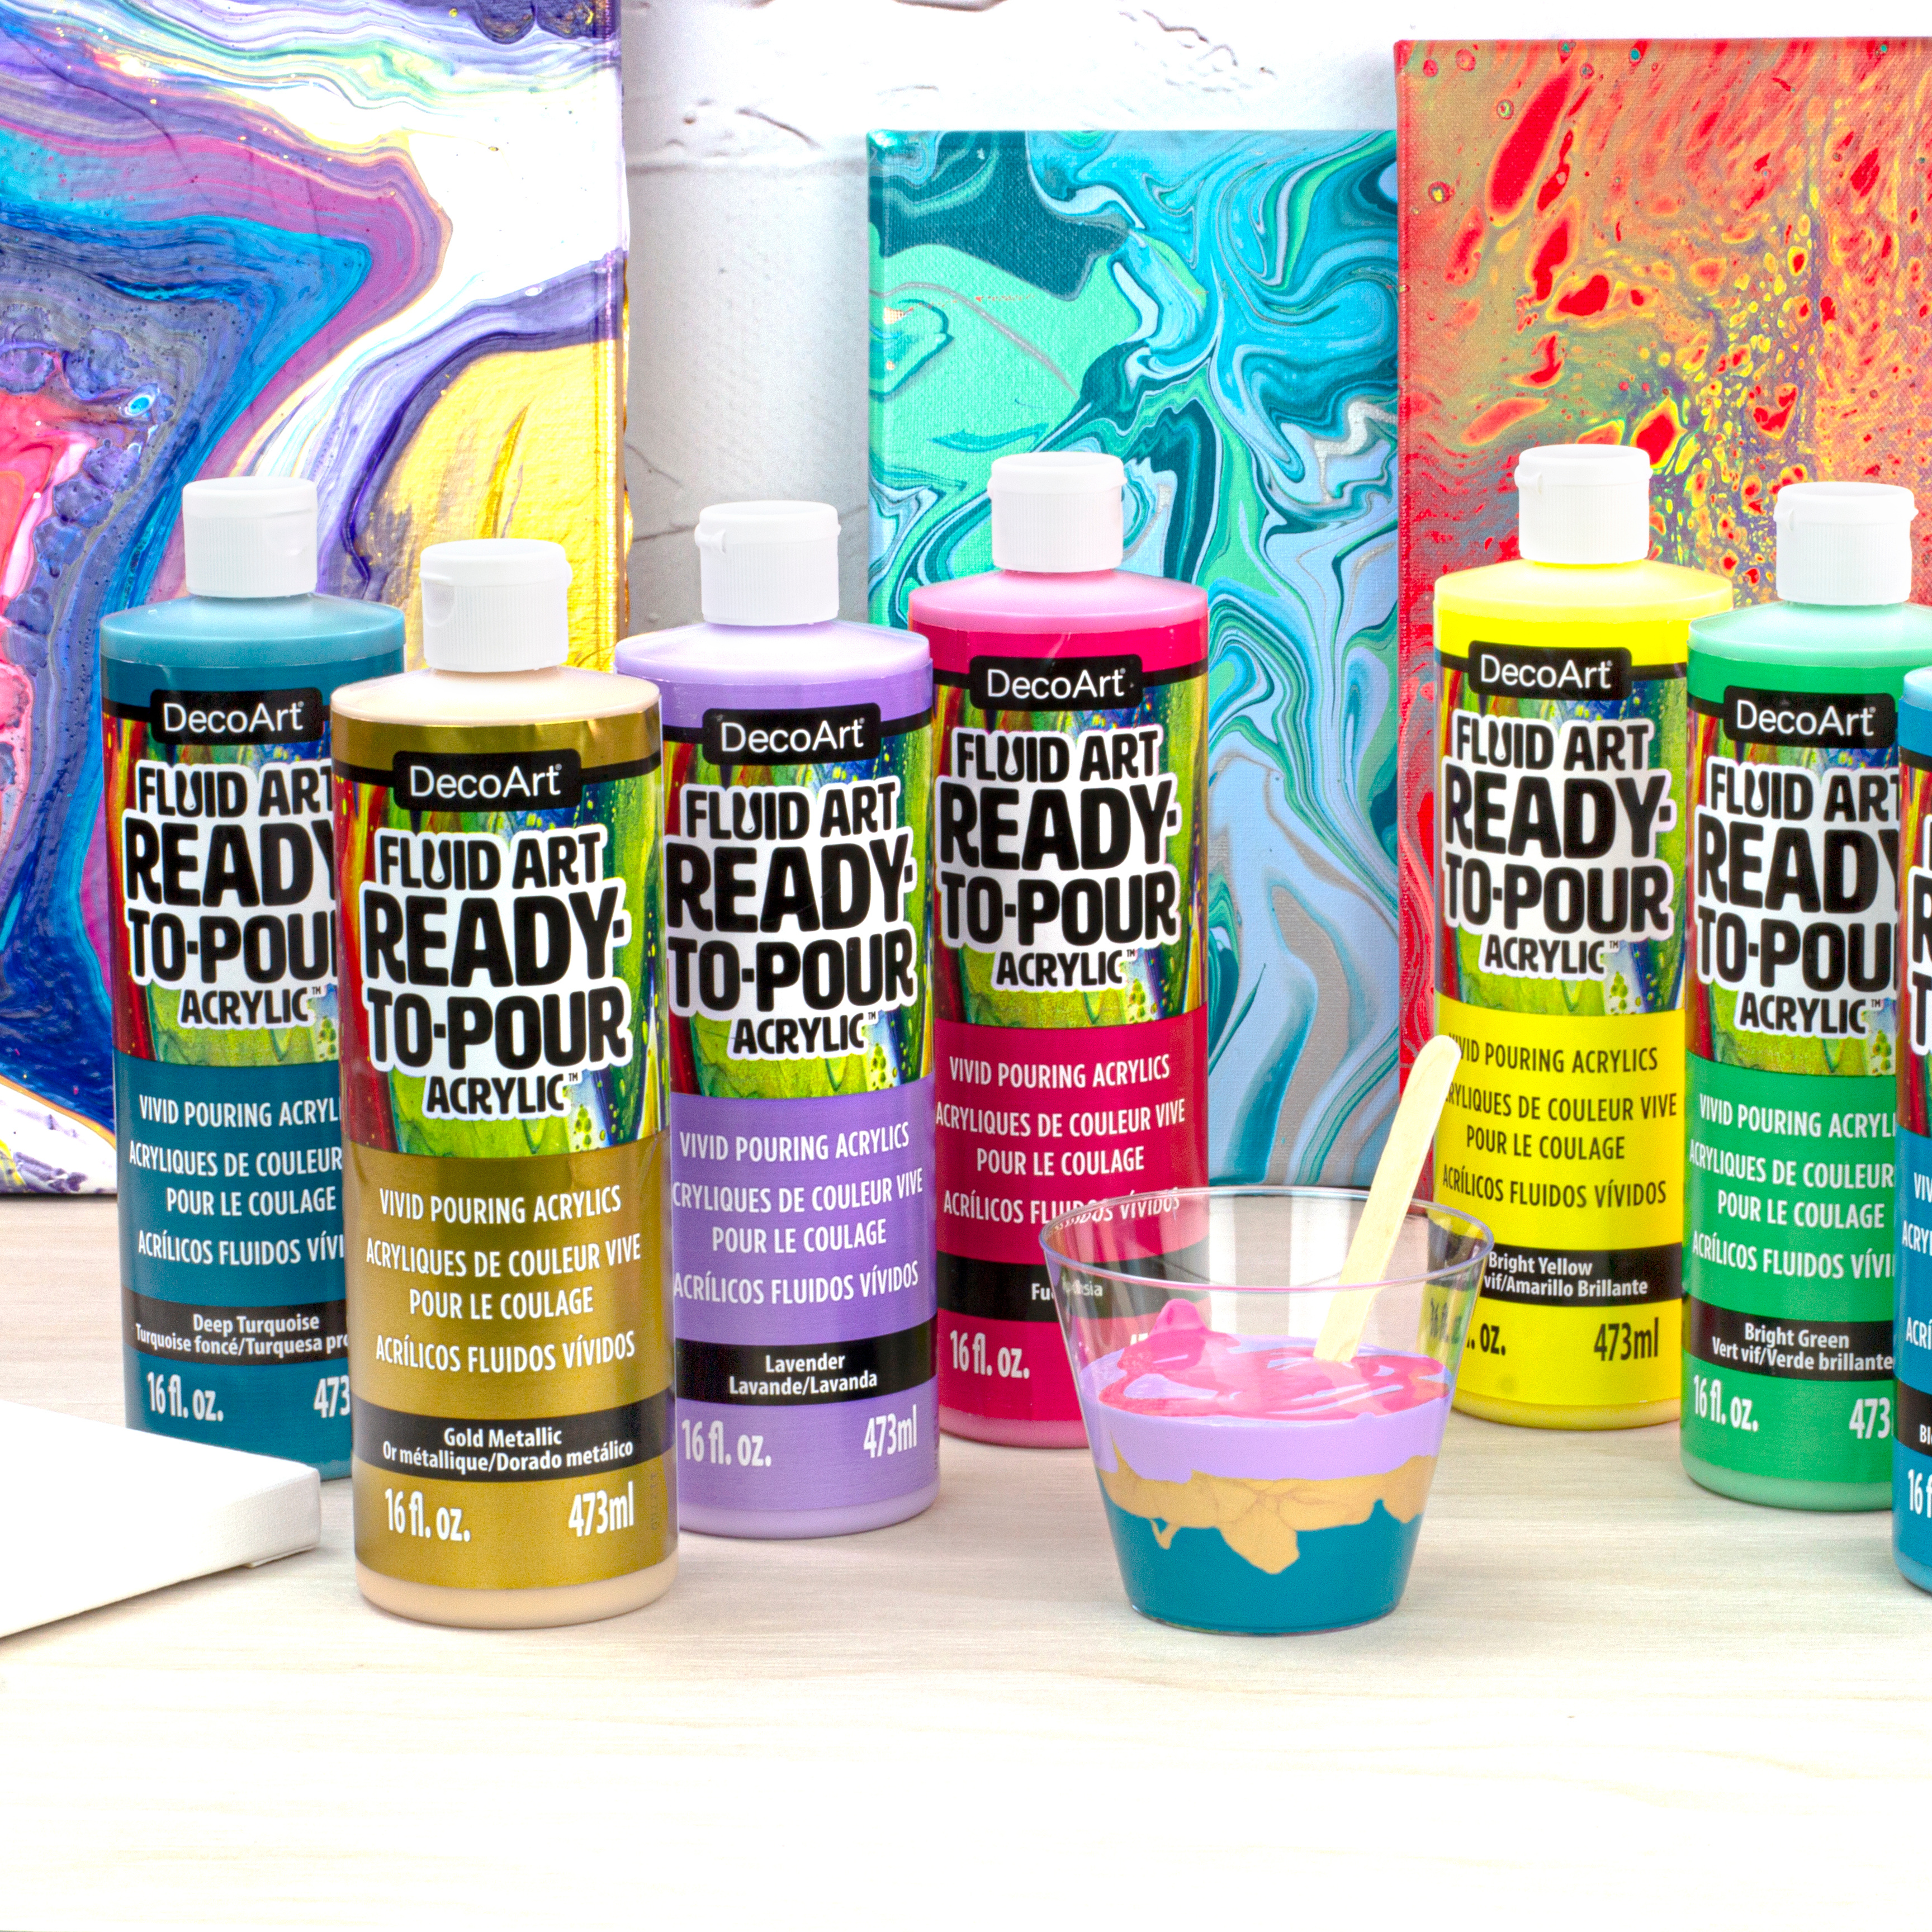 Fluid Art Ready to Pour Acrylics Product Image